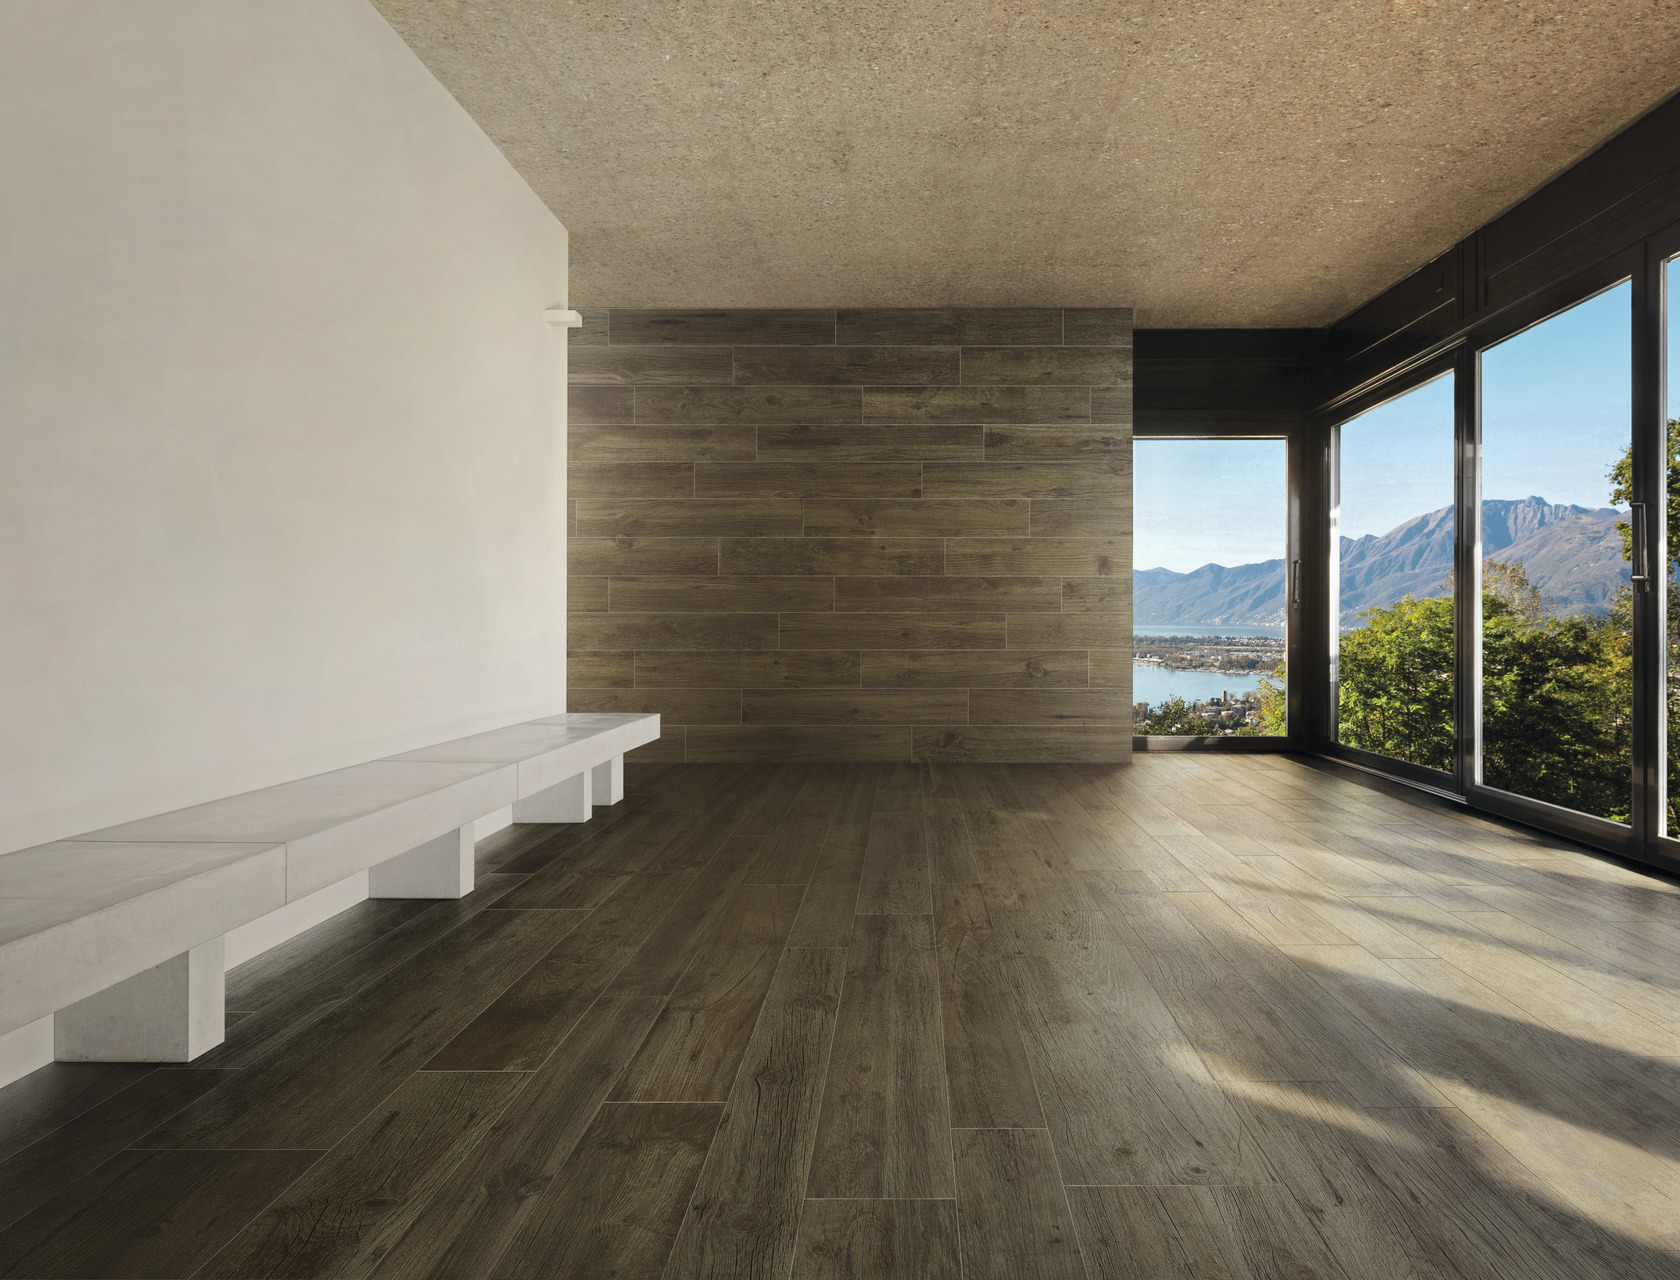 Wood Effect Brown Porcelain Tiles Quercia Canadese